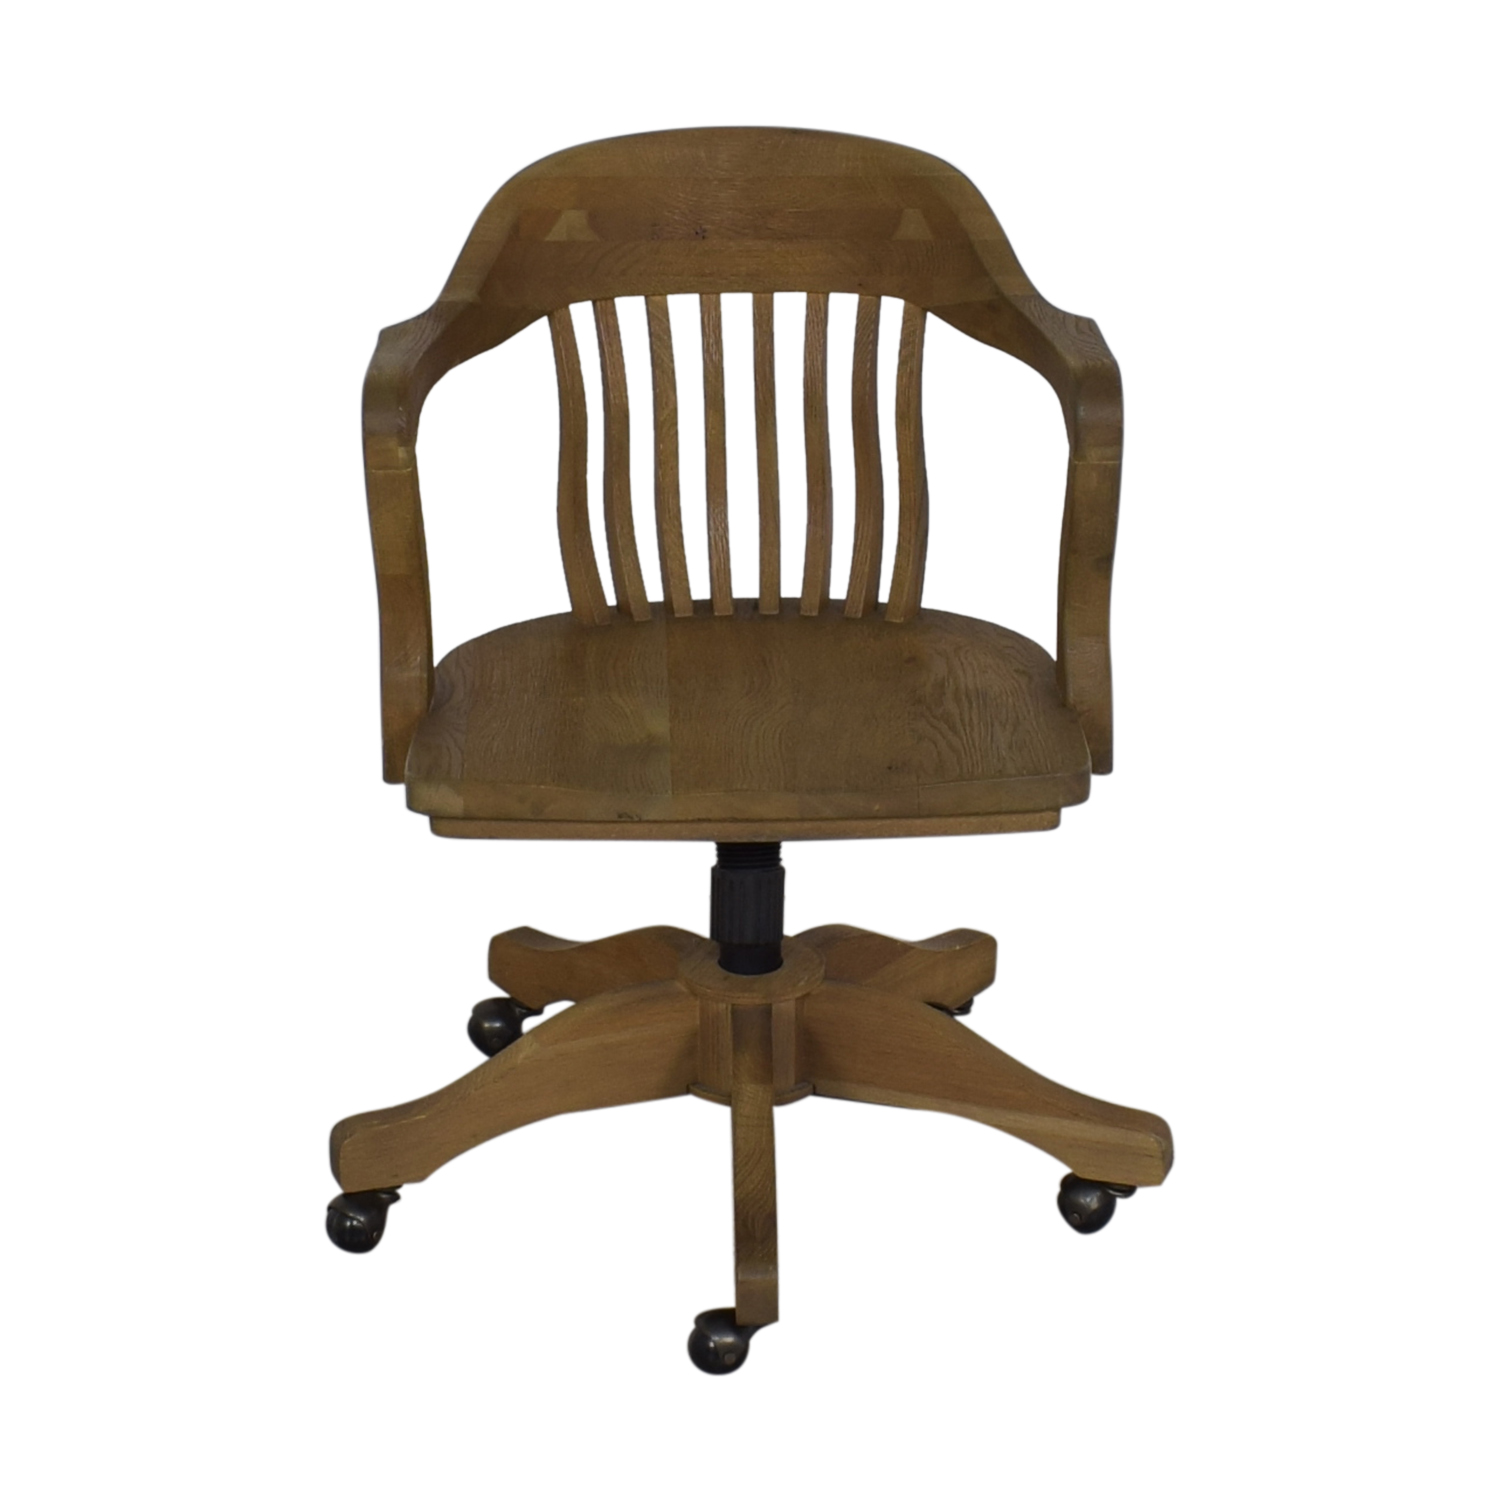 Restoration Hardware Restoration Hardware Bankers Chair Home Office Chairs